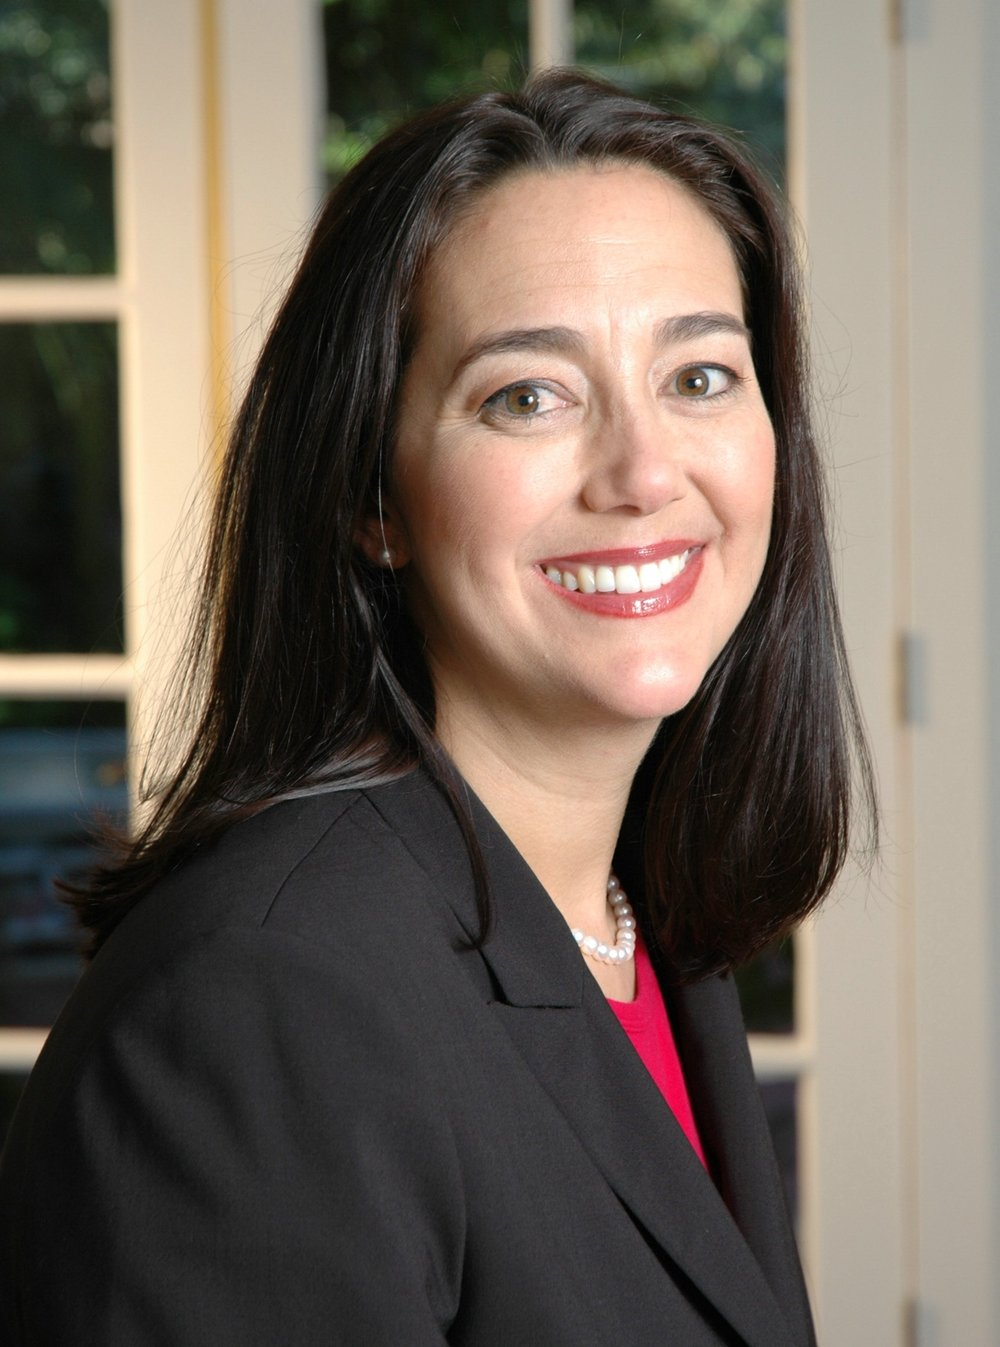 Erin Gruwell, founder of the Freedom Writers Foundation.